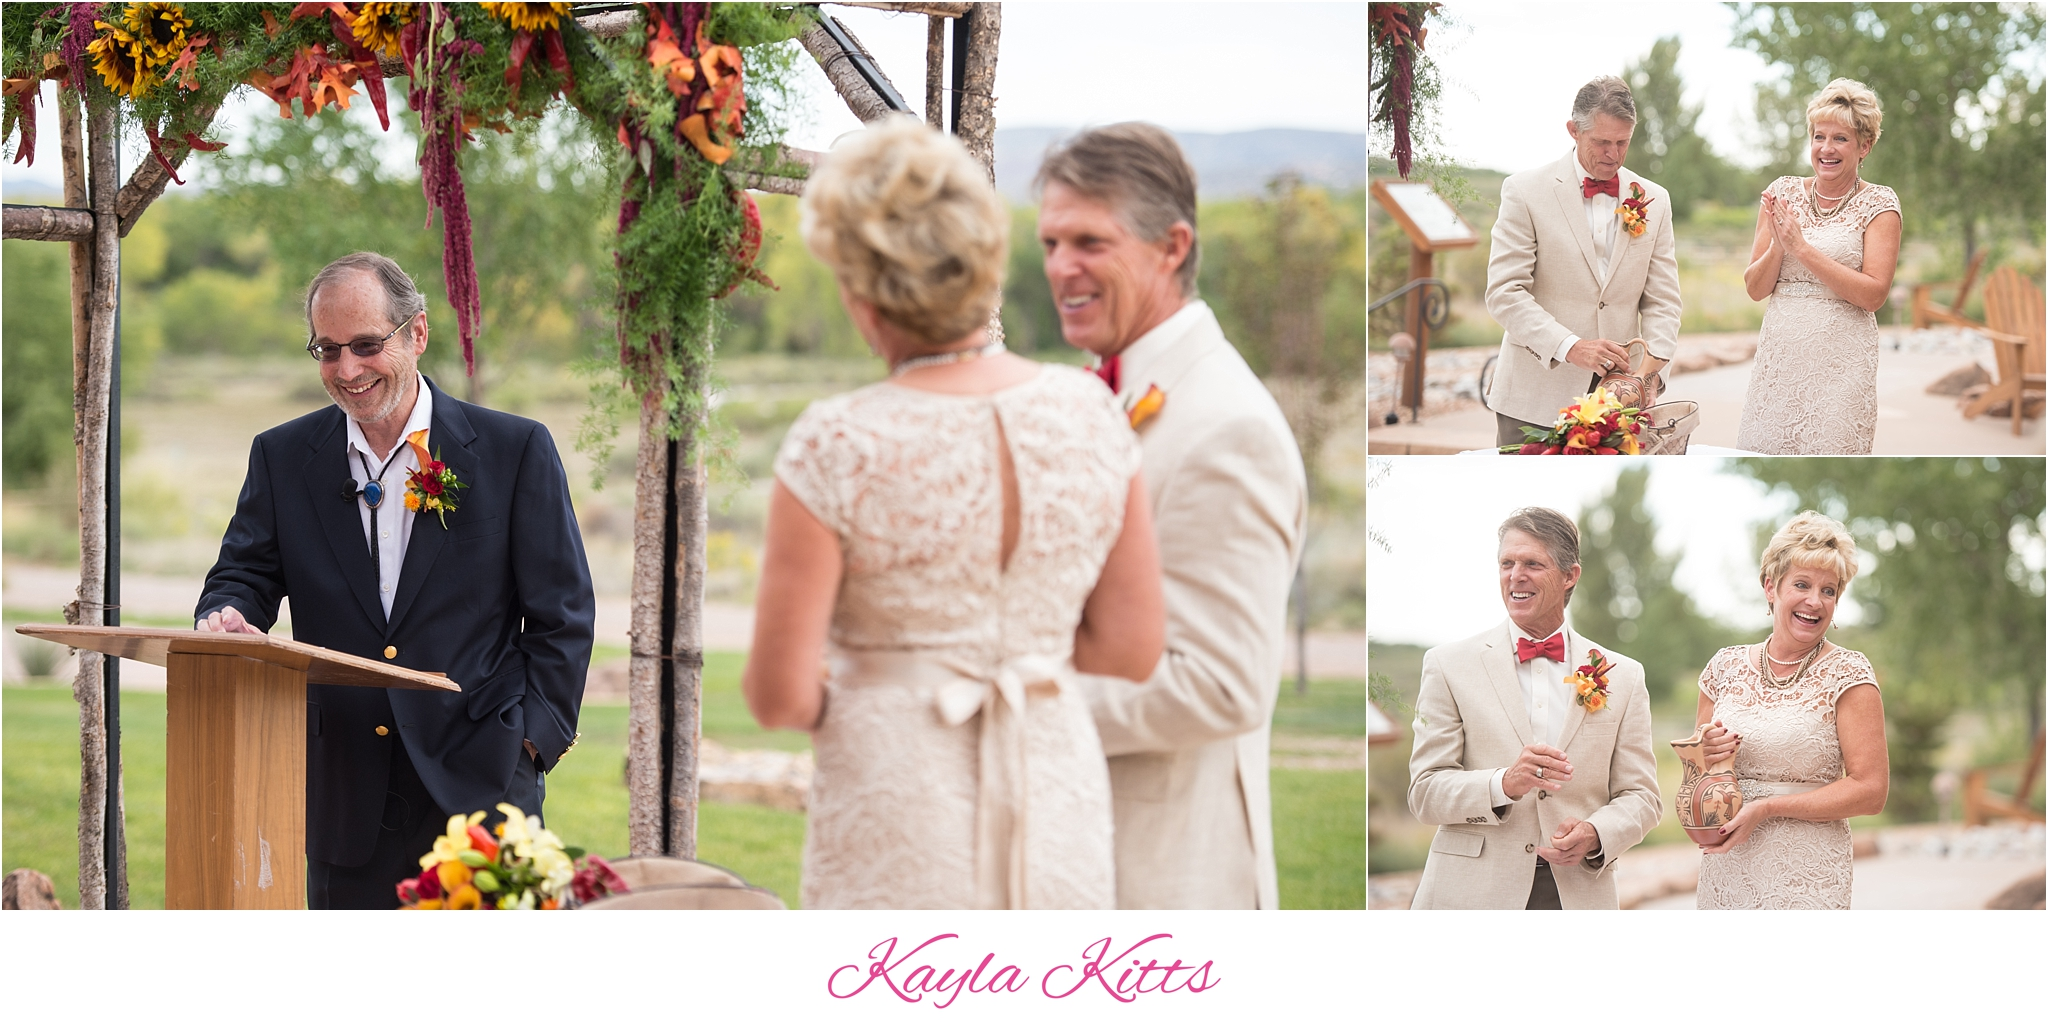 kayla kitts photography - albuquerque wedding photographer - albuquerque wedding photography - albuquerque venue - hyatt tamaya - hyatt tamaya wedding - new mexico wedding photographer_0046.jpg